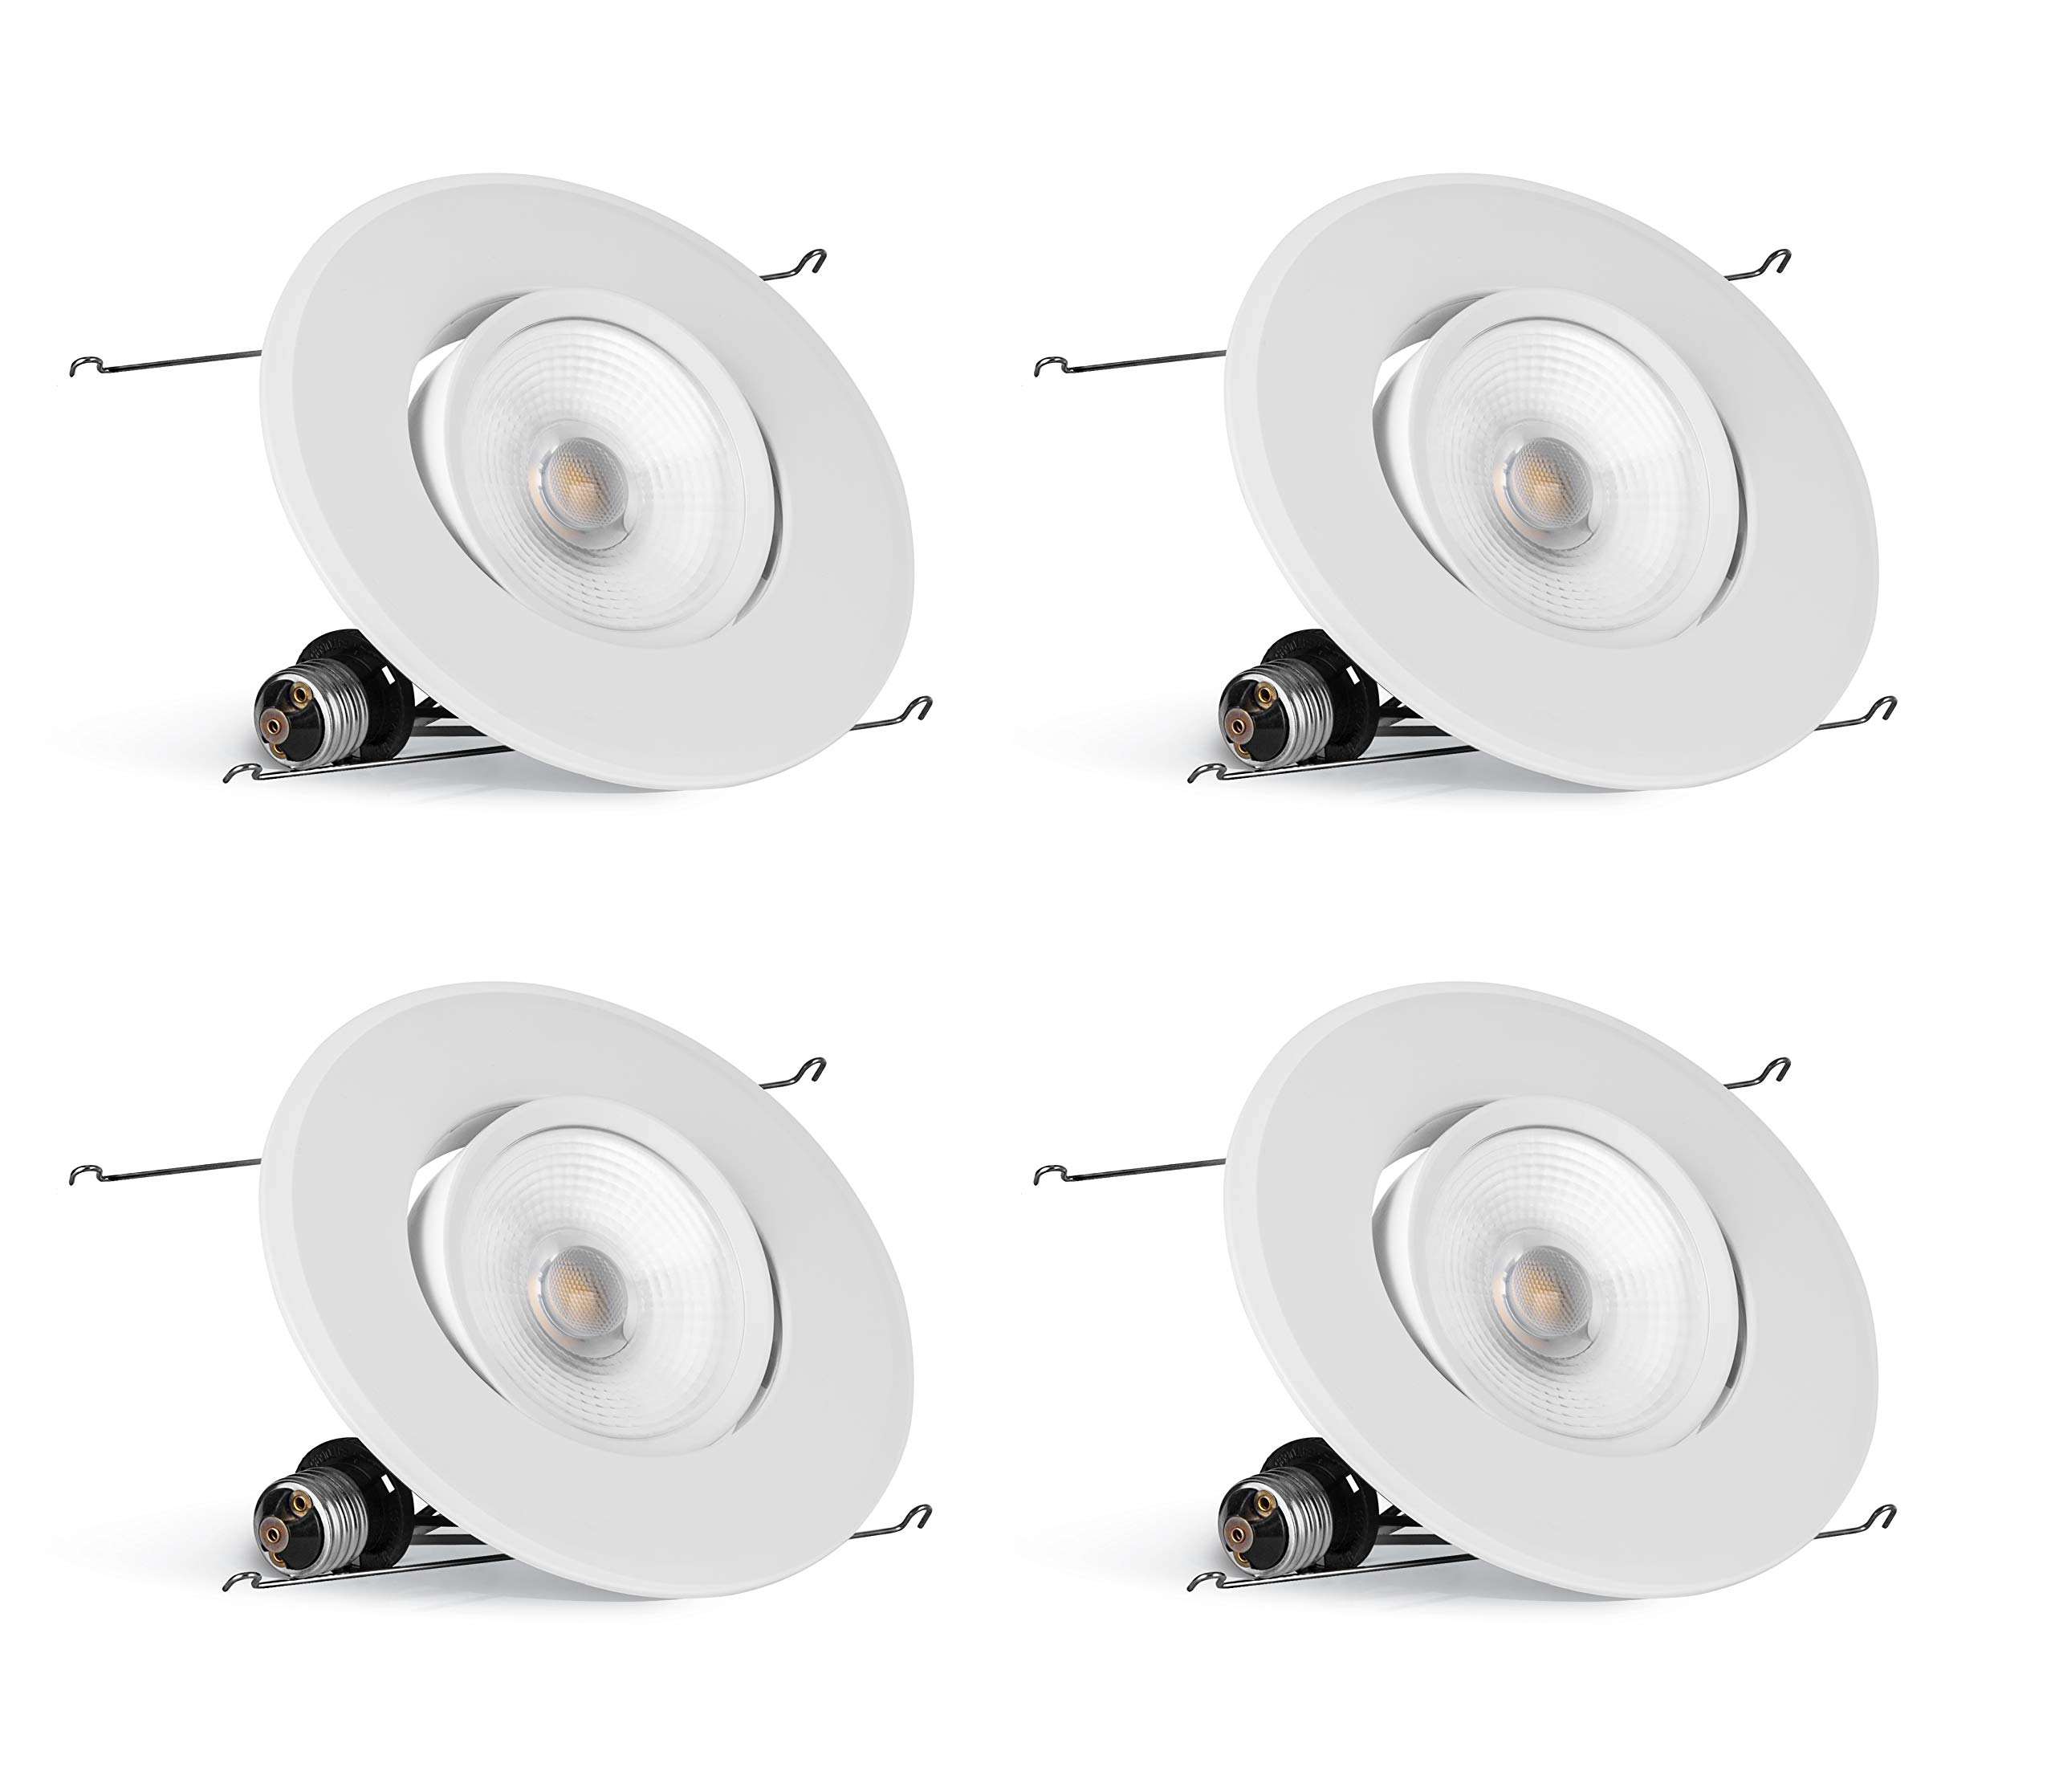 Hyperikon 6 Inch LED Recessed Gimbal Lighting, 75 Watt (16.5W) 5 Inch, Dimmable Downlight, 3000K, 4 Pack